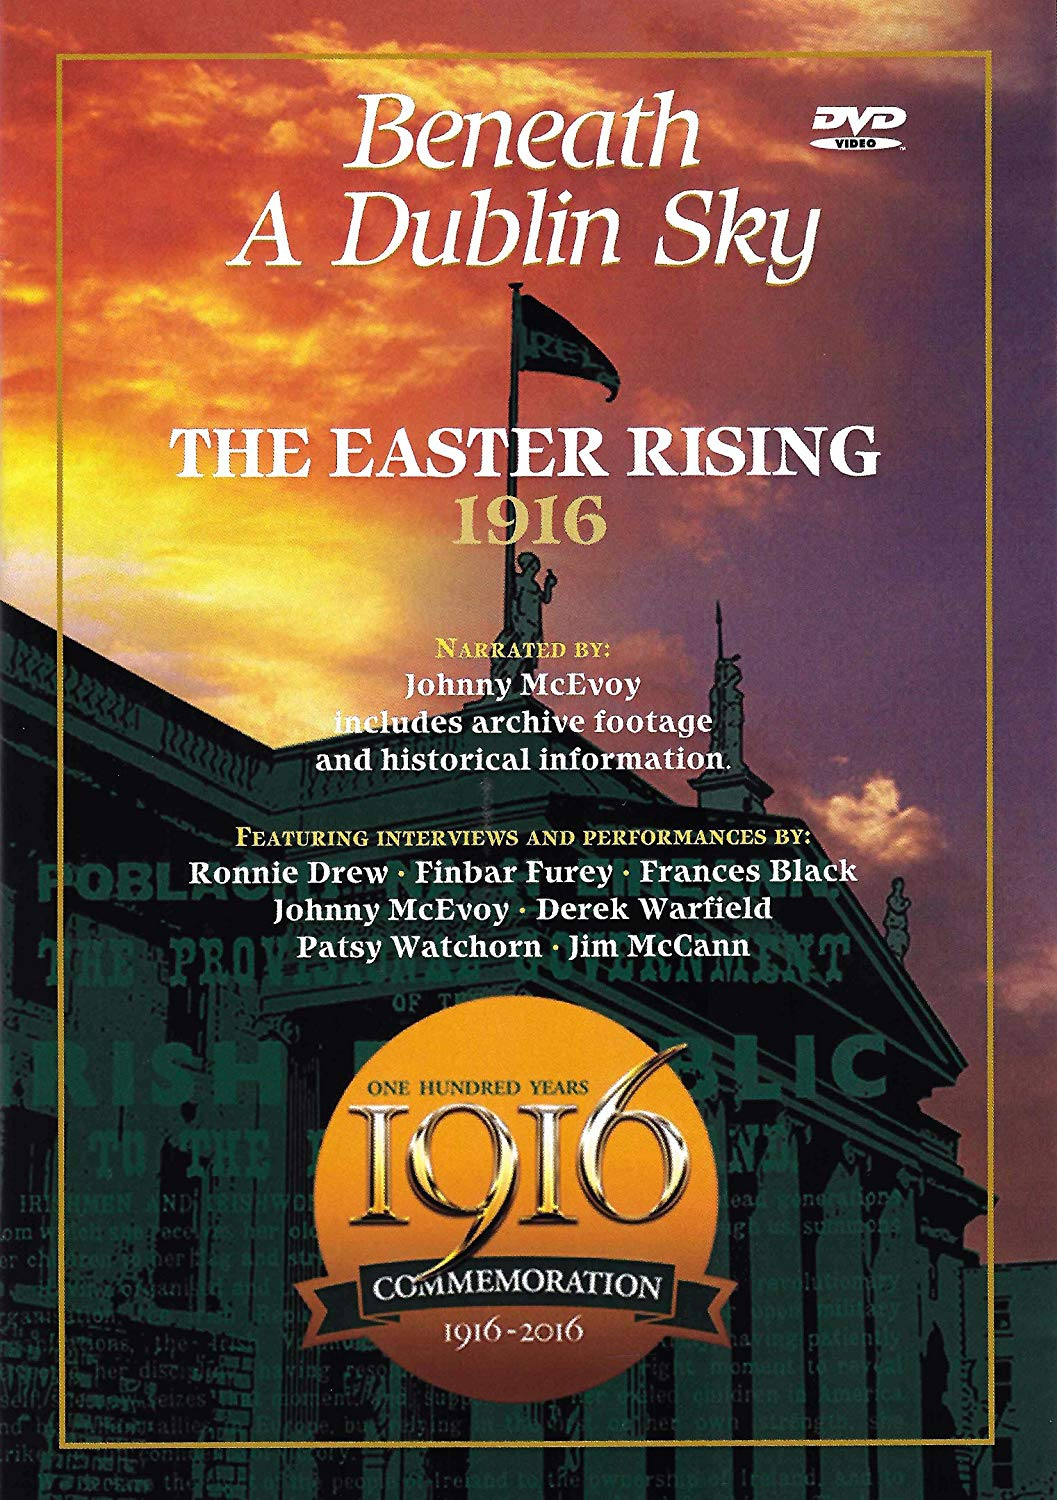 1916 EASTER RISING: BENEATH A DUBLIN SKY [DVD]